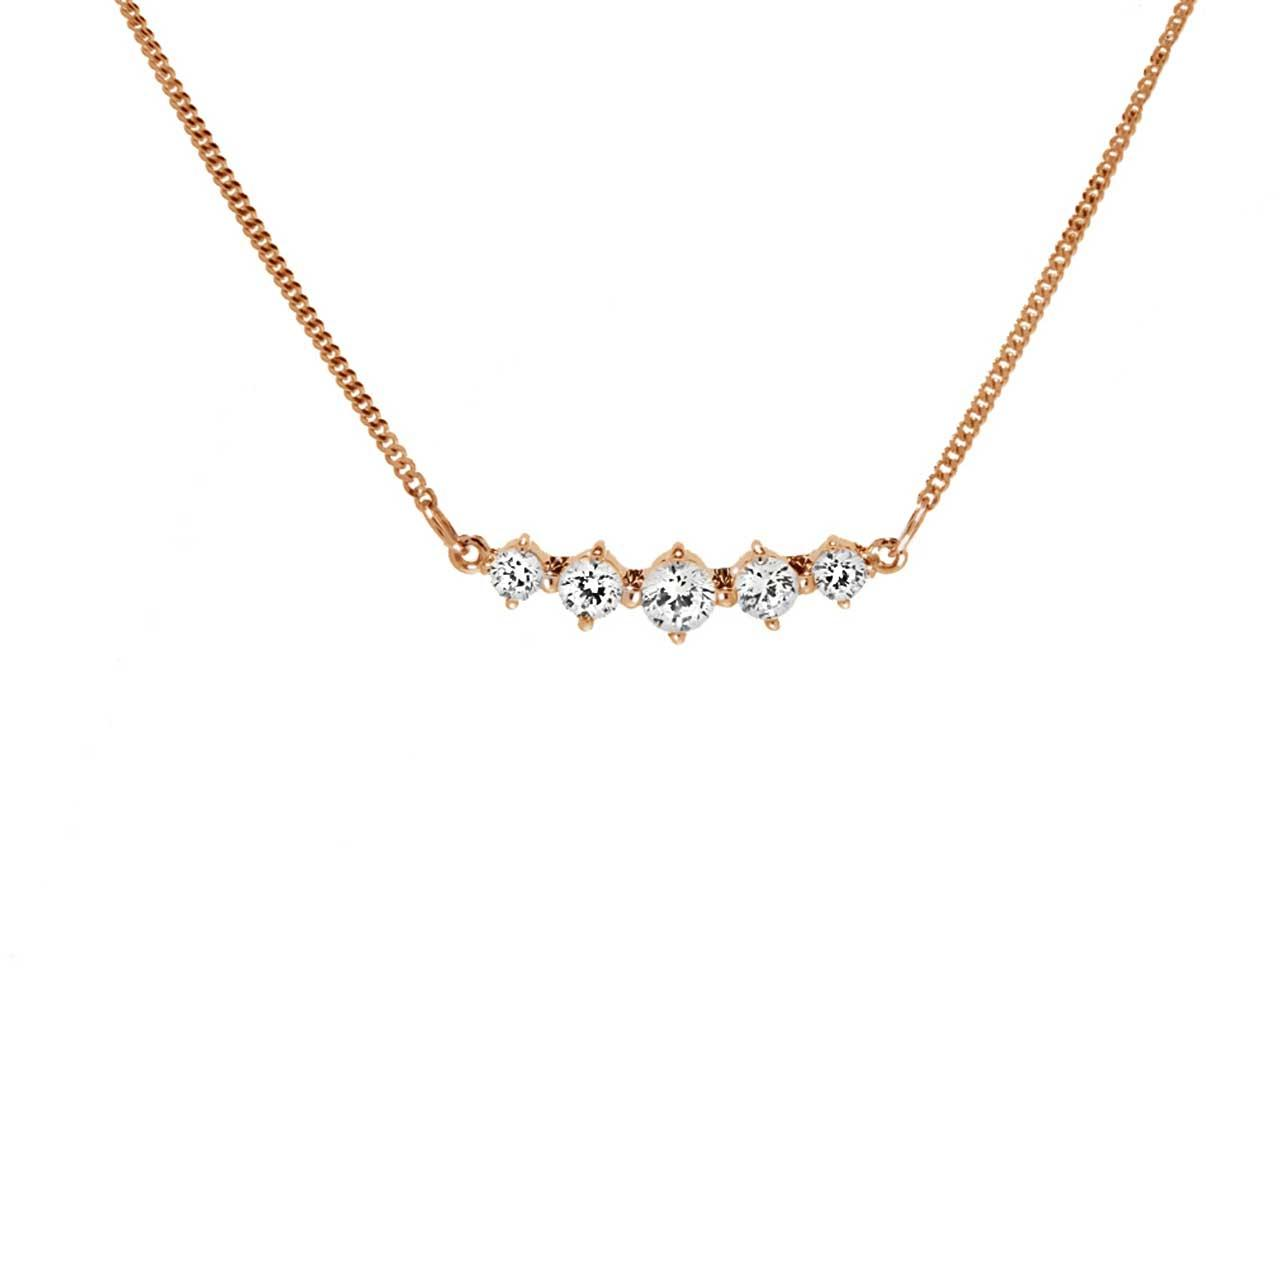 'Five Symbols of Joy' Necklace with CZ